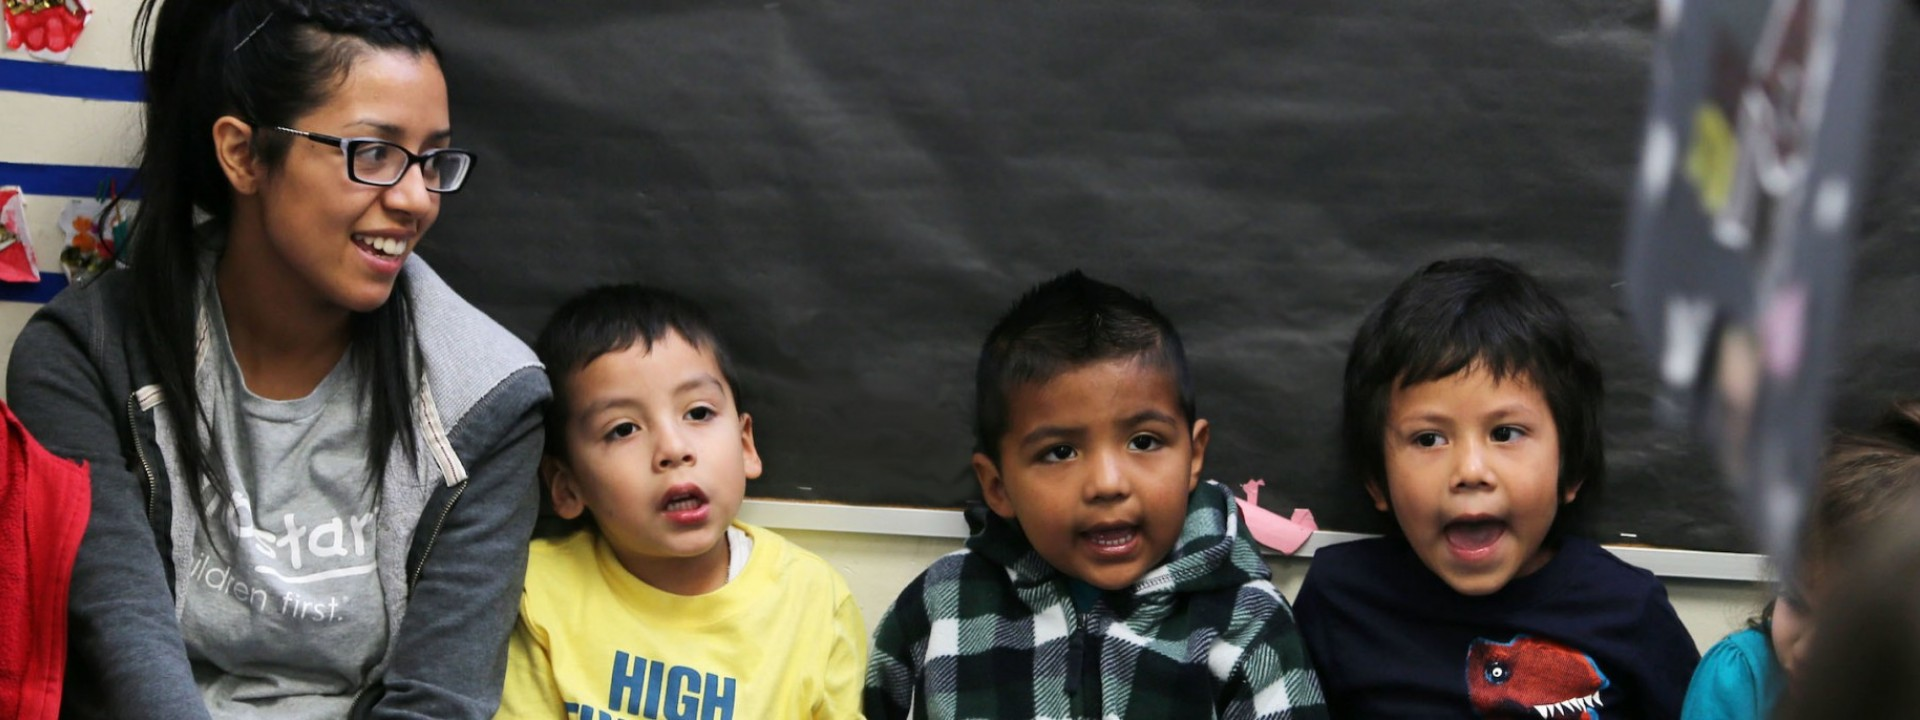 Image of a Cal State LA female student sitting next to three small children who appear to be singing.